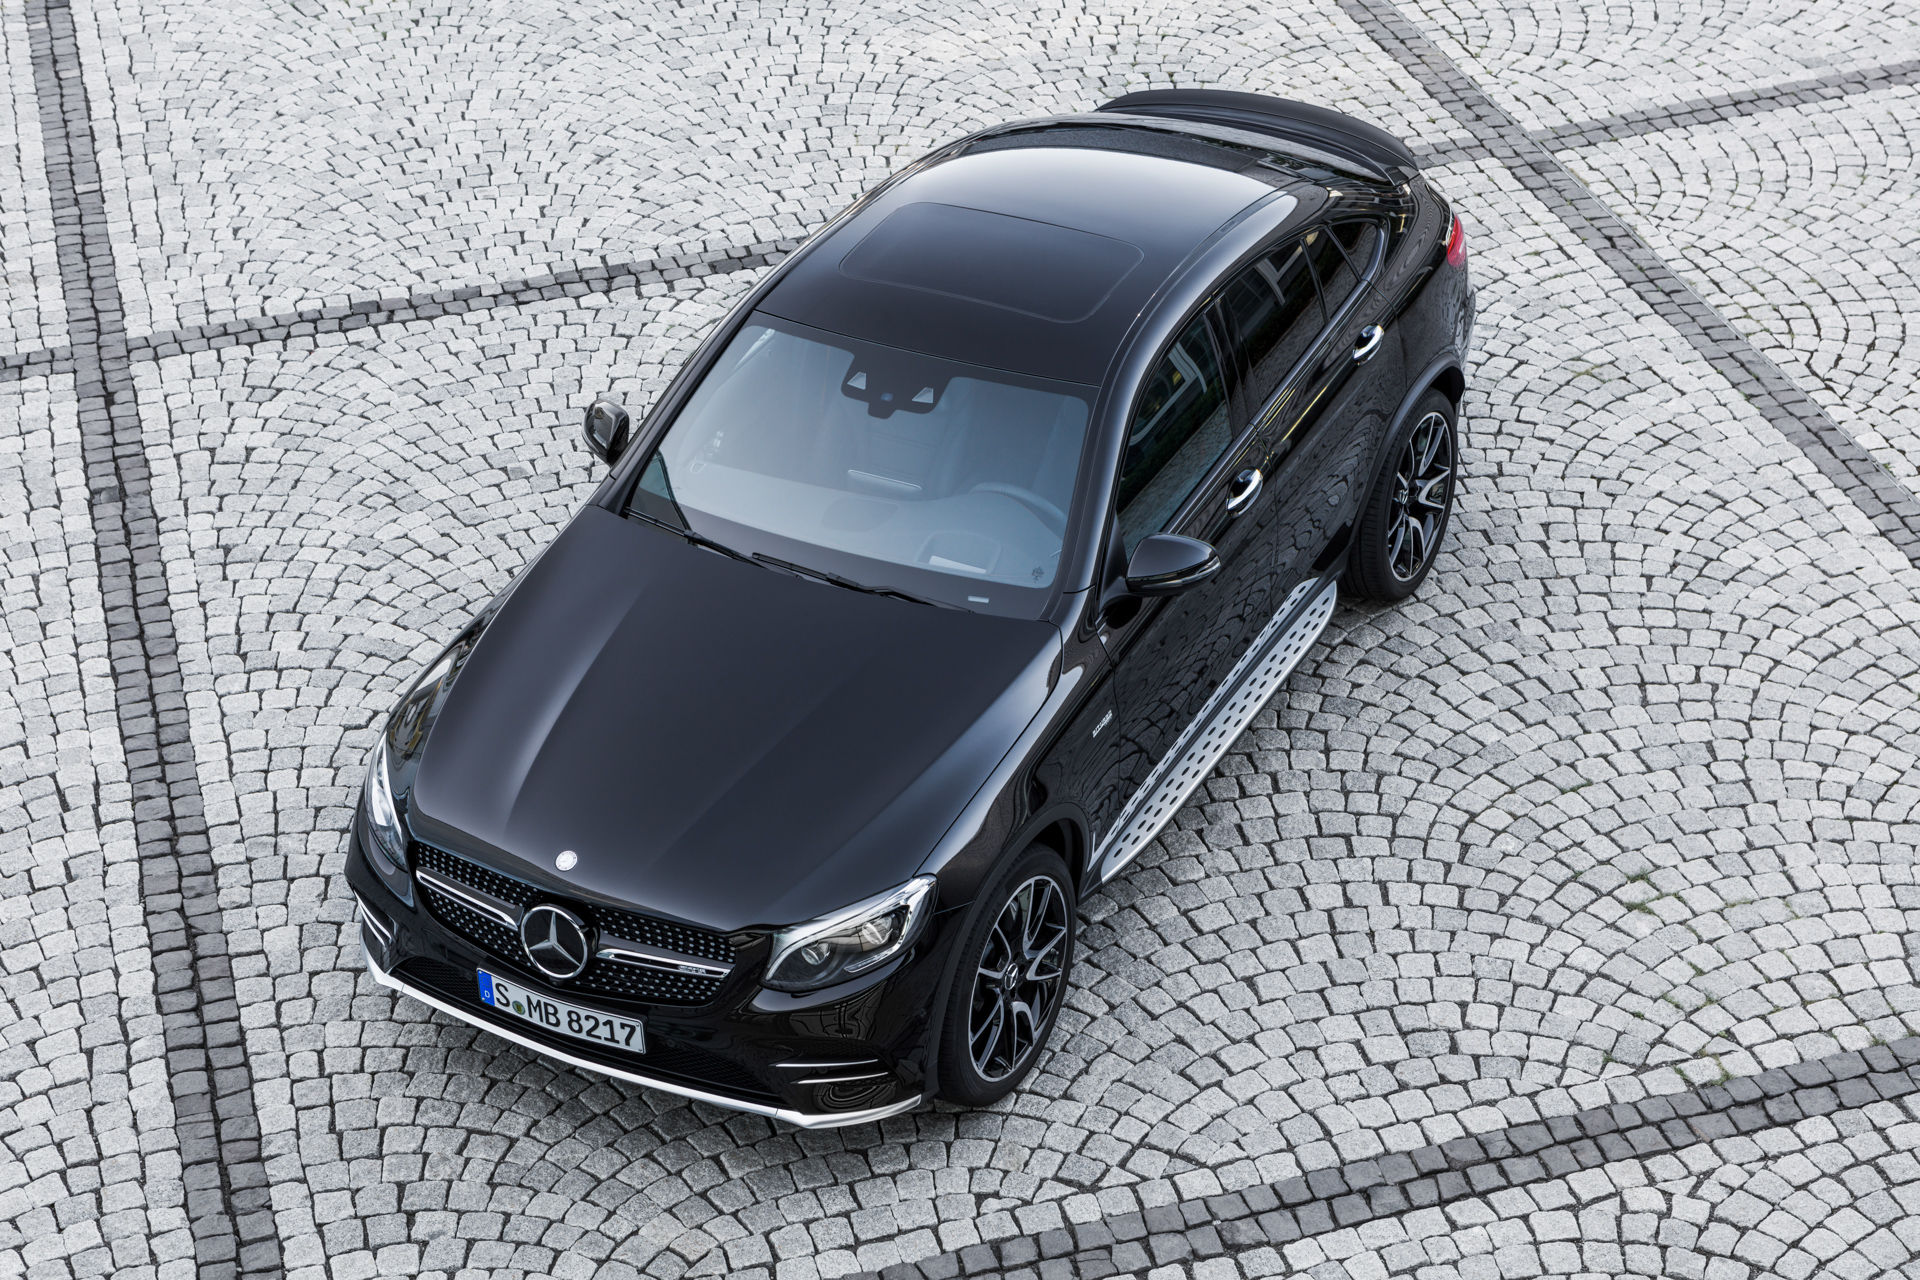 AMG GLC 43 4MATIC Coupé; Outdoor; 2016 Exterieur: Obsidianschwarz Kraftstoffverbrauch kombiniert: 8,4 l/100 km, CO2-Emissionen kombiniert: 192 g/km exterior: obsidian black Fuel consumption, combined: 8.4 l/100 km, CO2 emissions, combined: 192 g/km